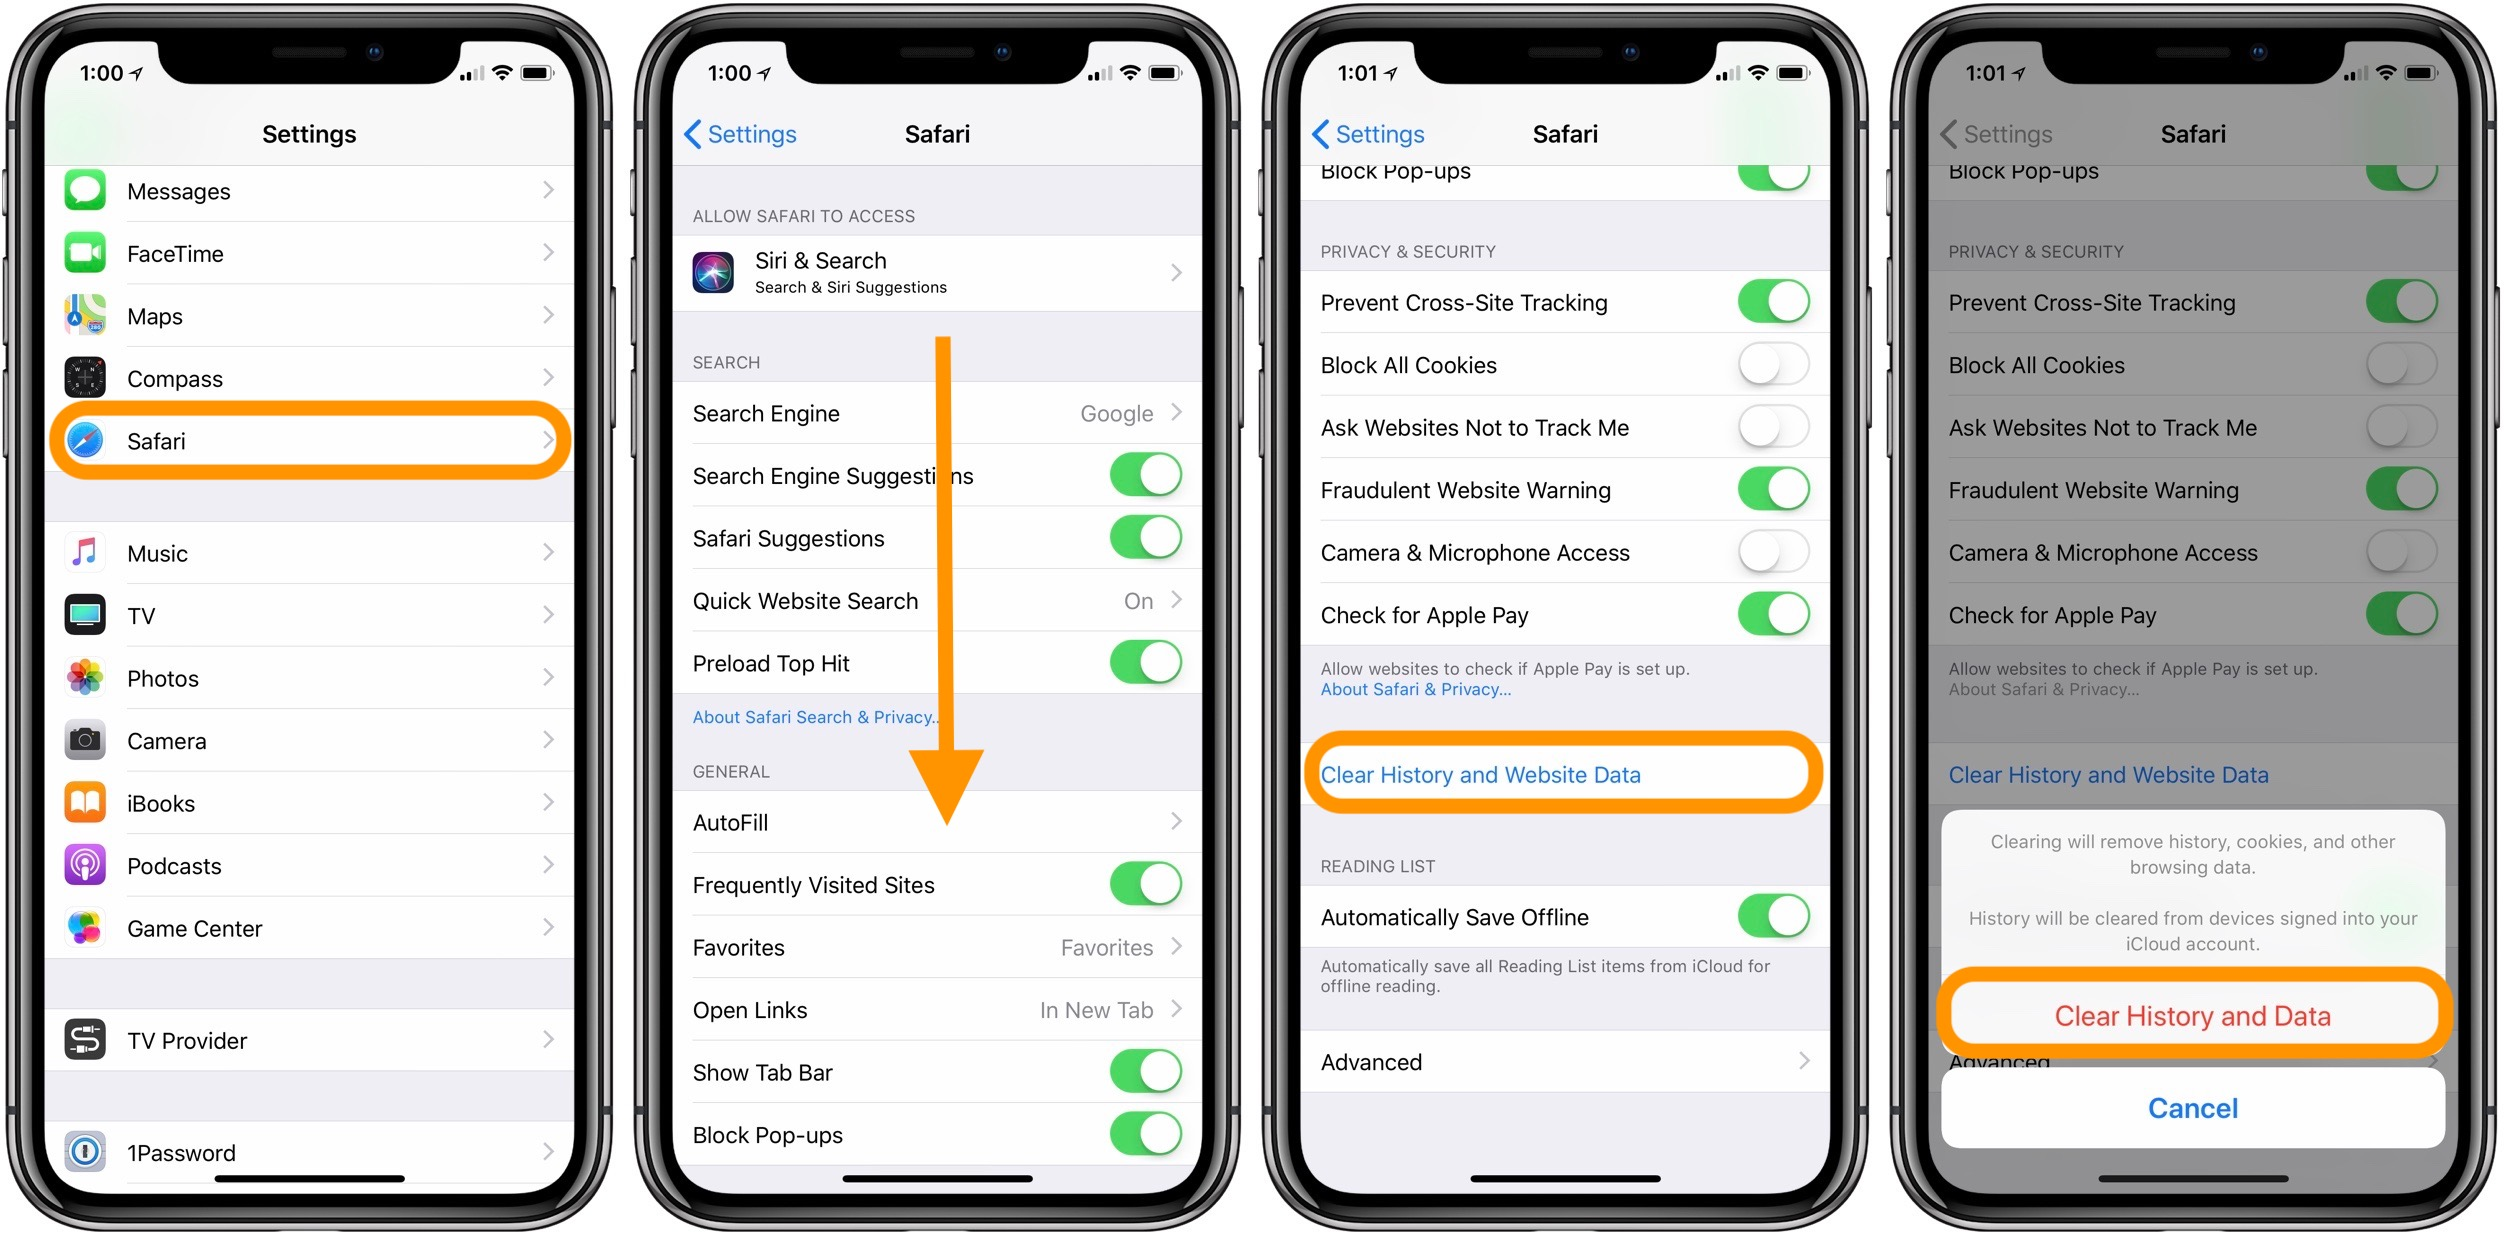 How to delete apps for iphone 6